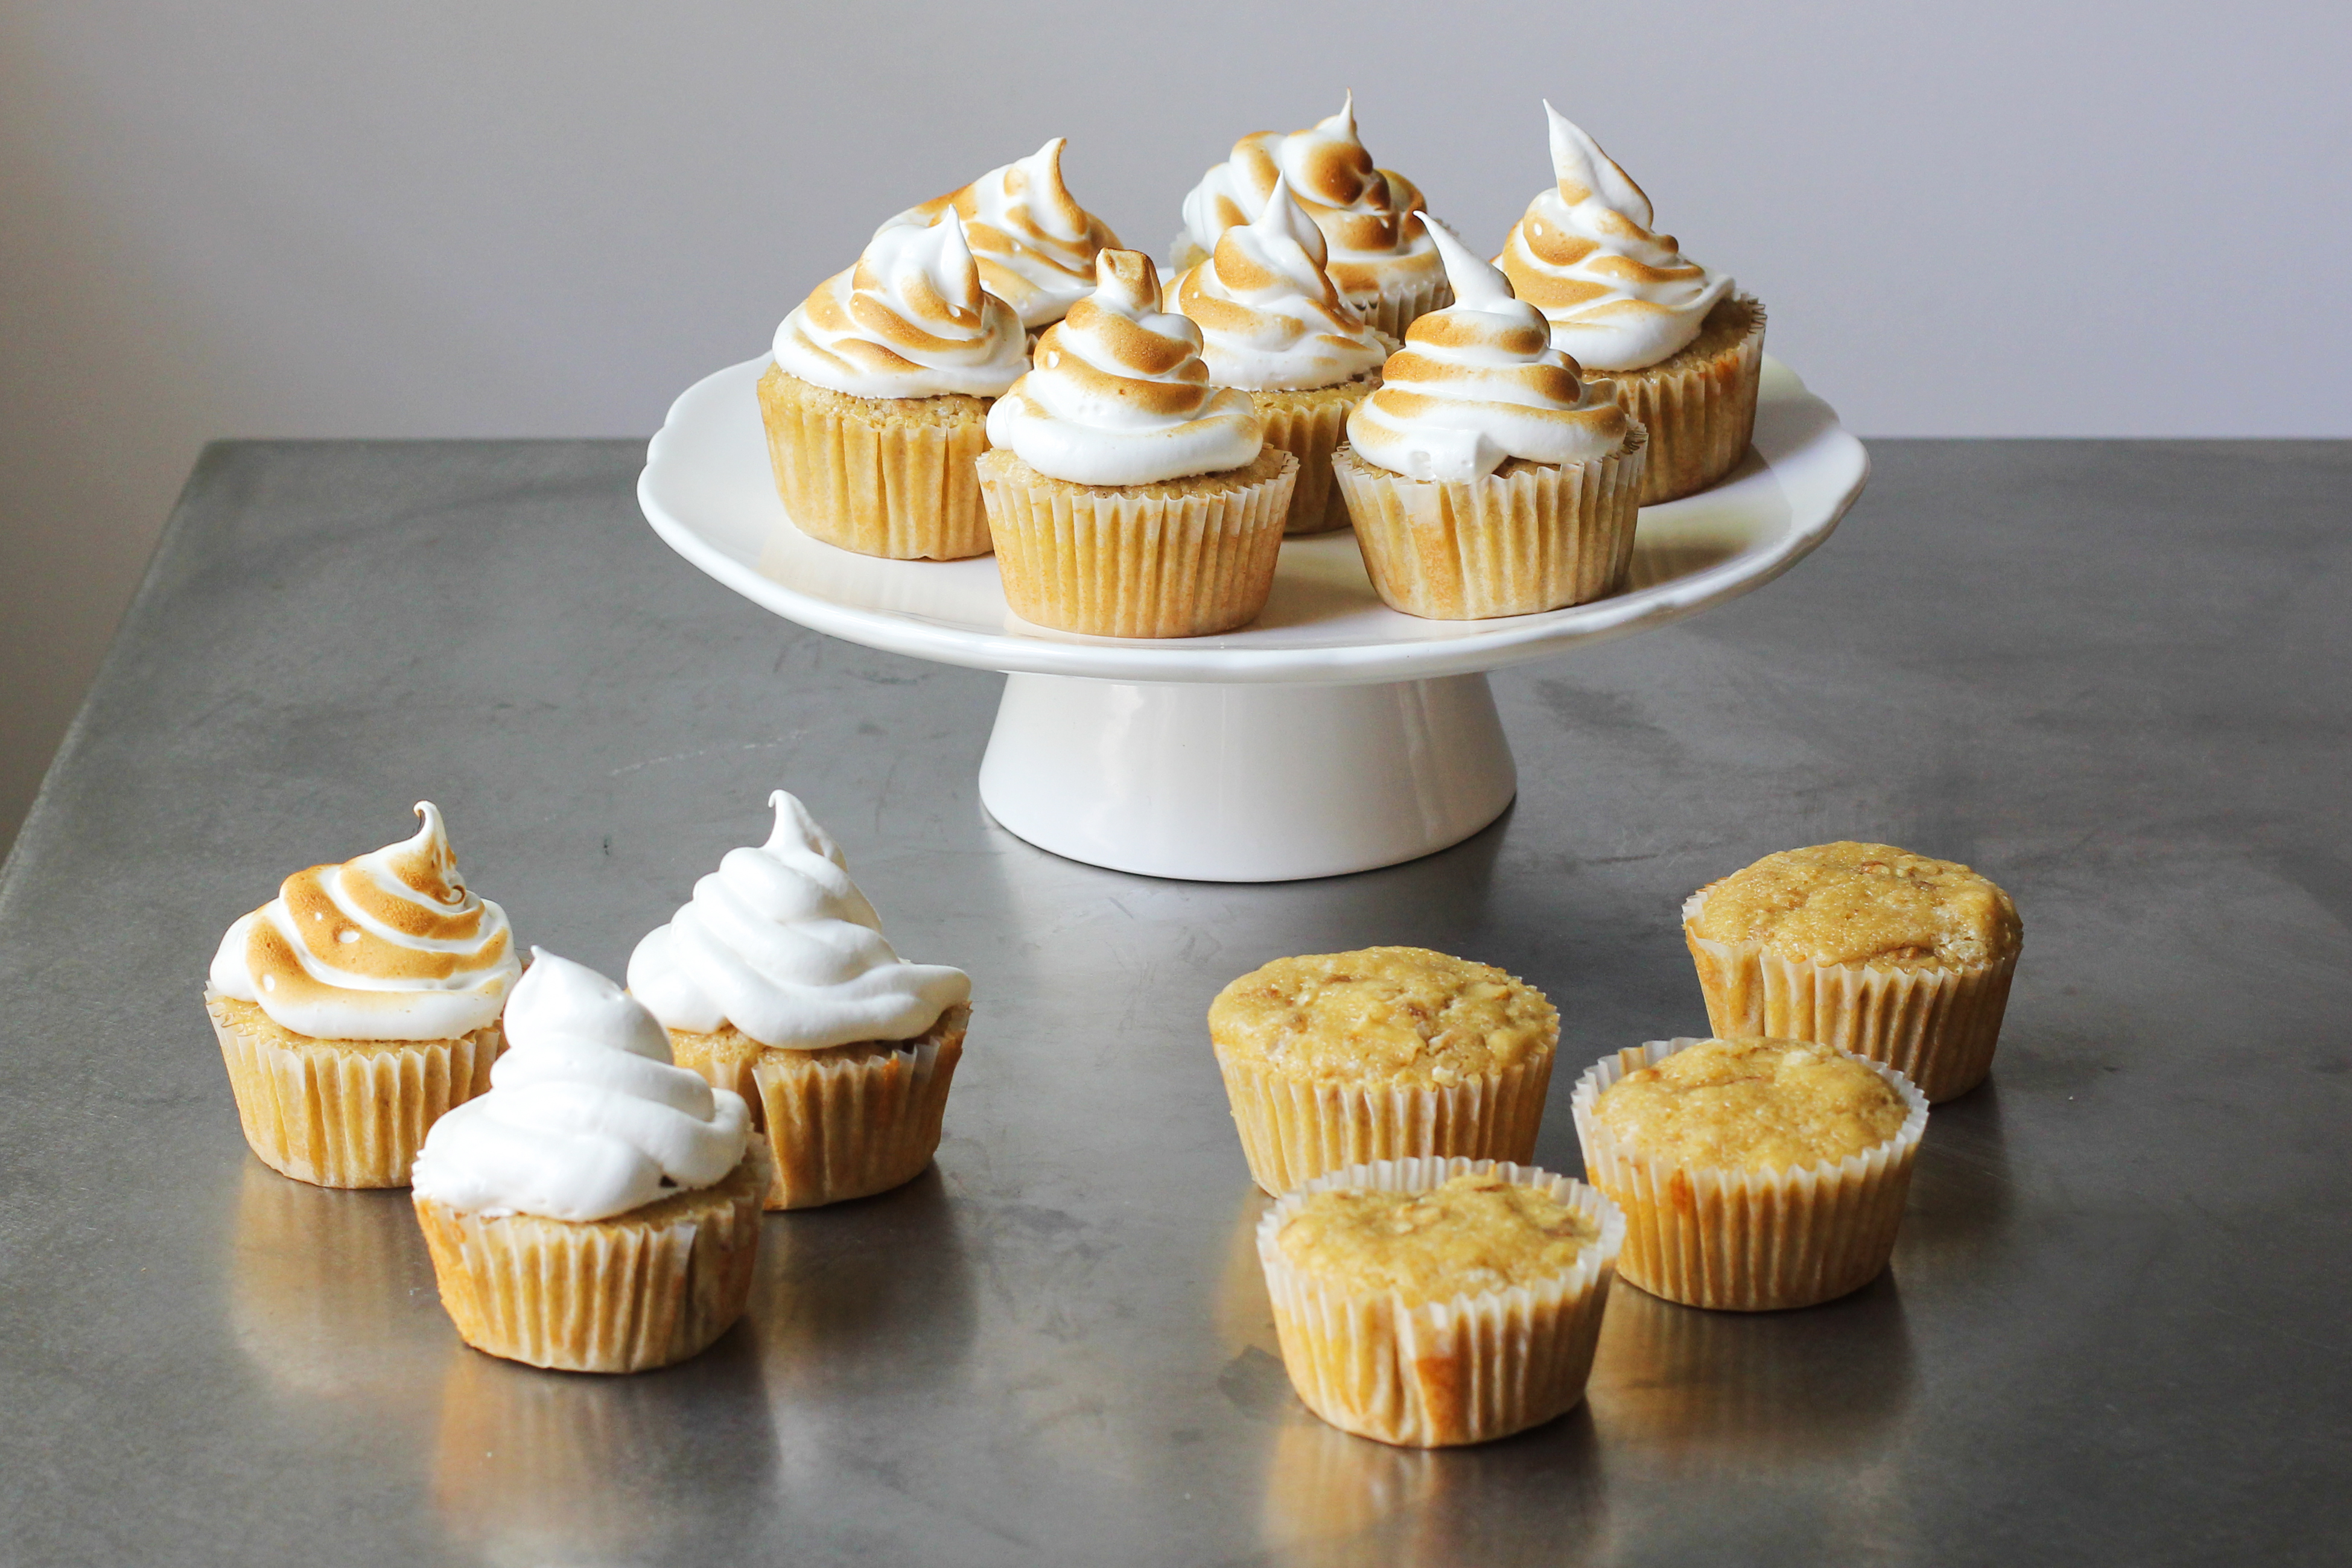 Maple Cupcakes with Toasted Marshmallow Frosting